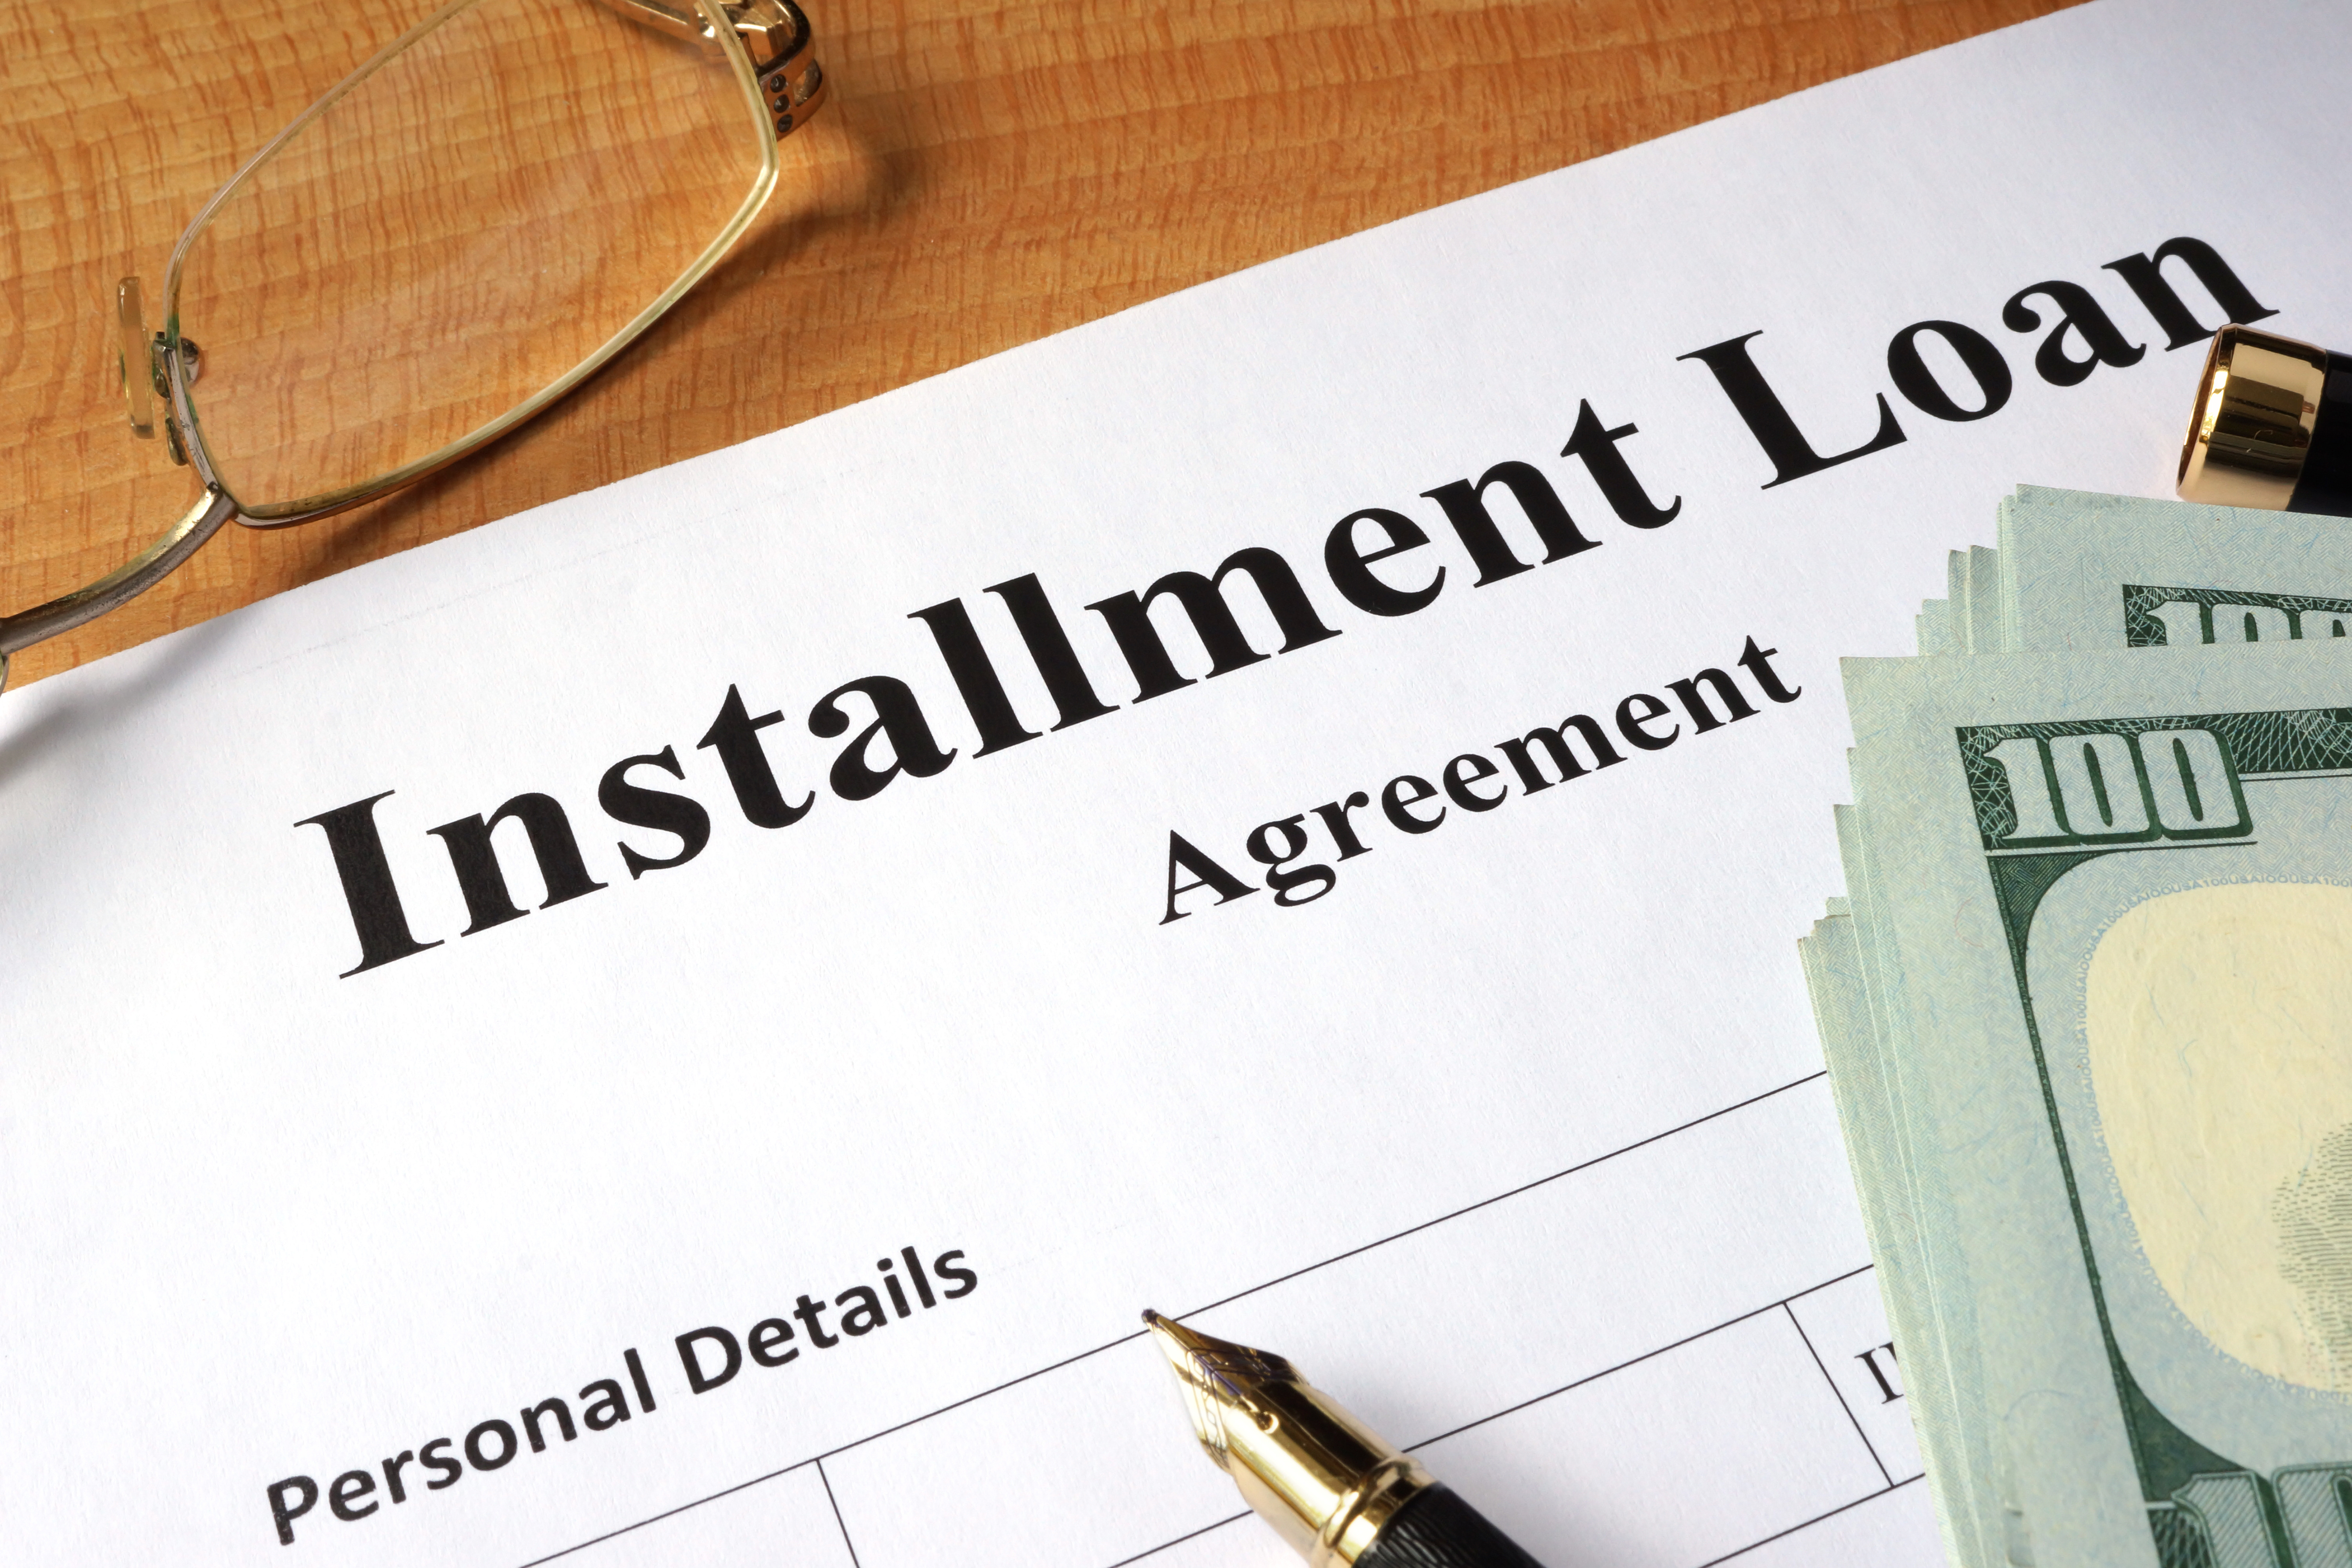 Bad Credit But Need a Loan? Everything You Need to Know About Installment Credit